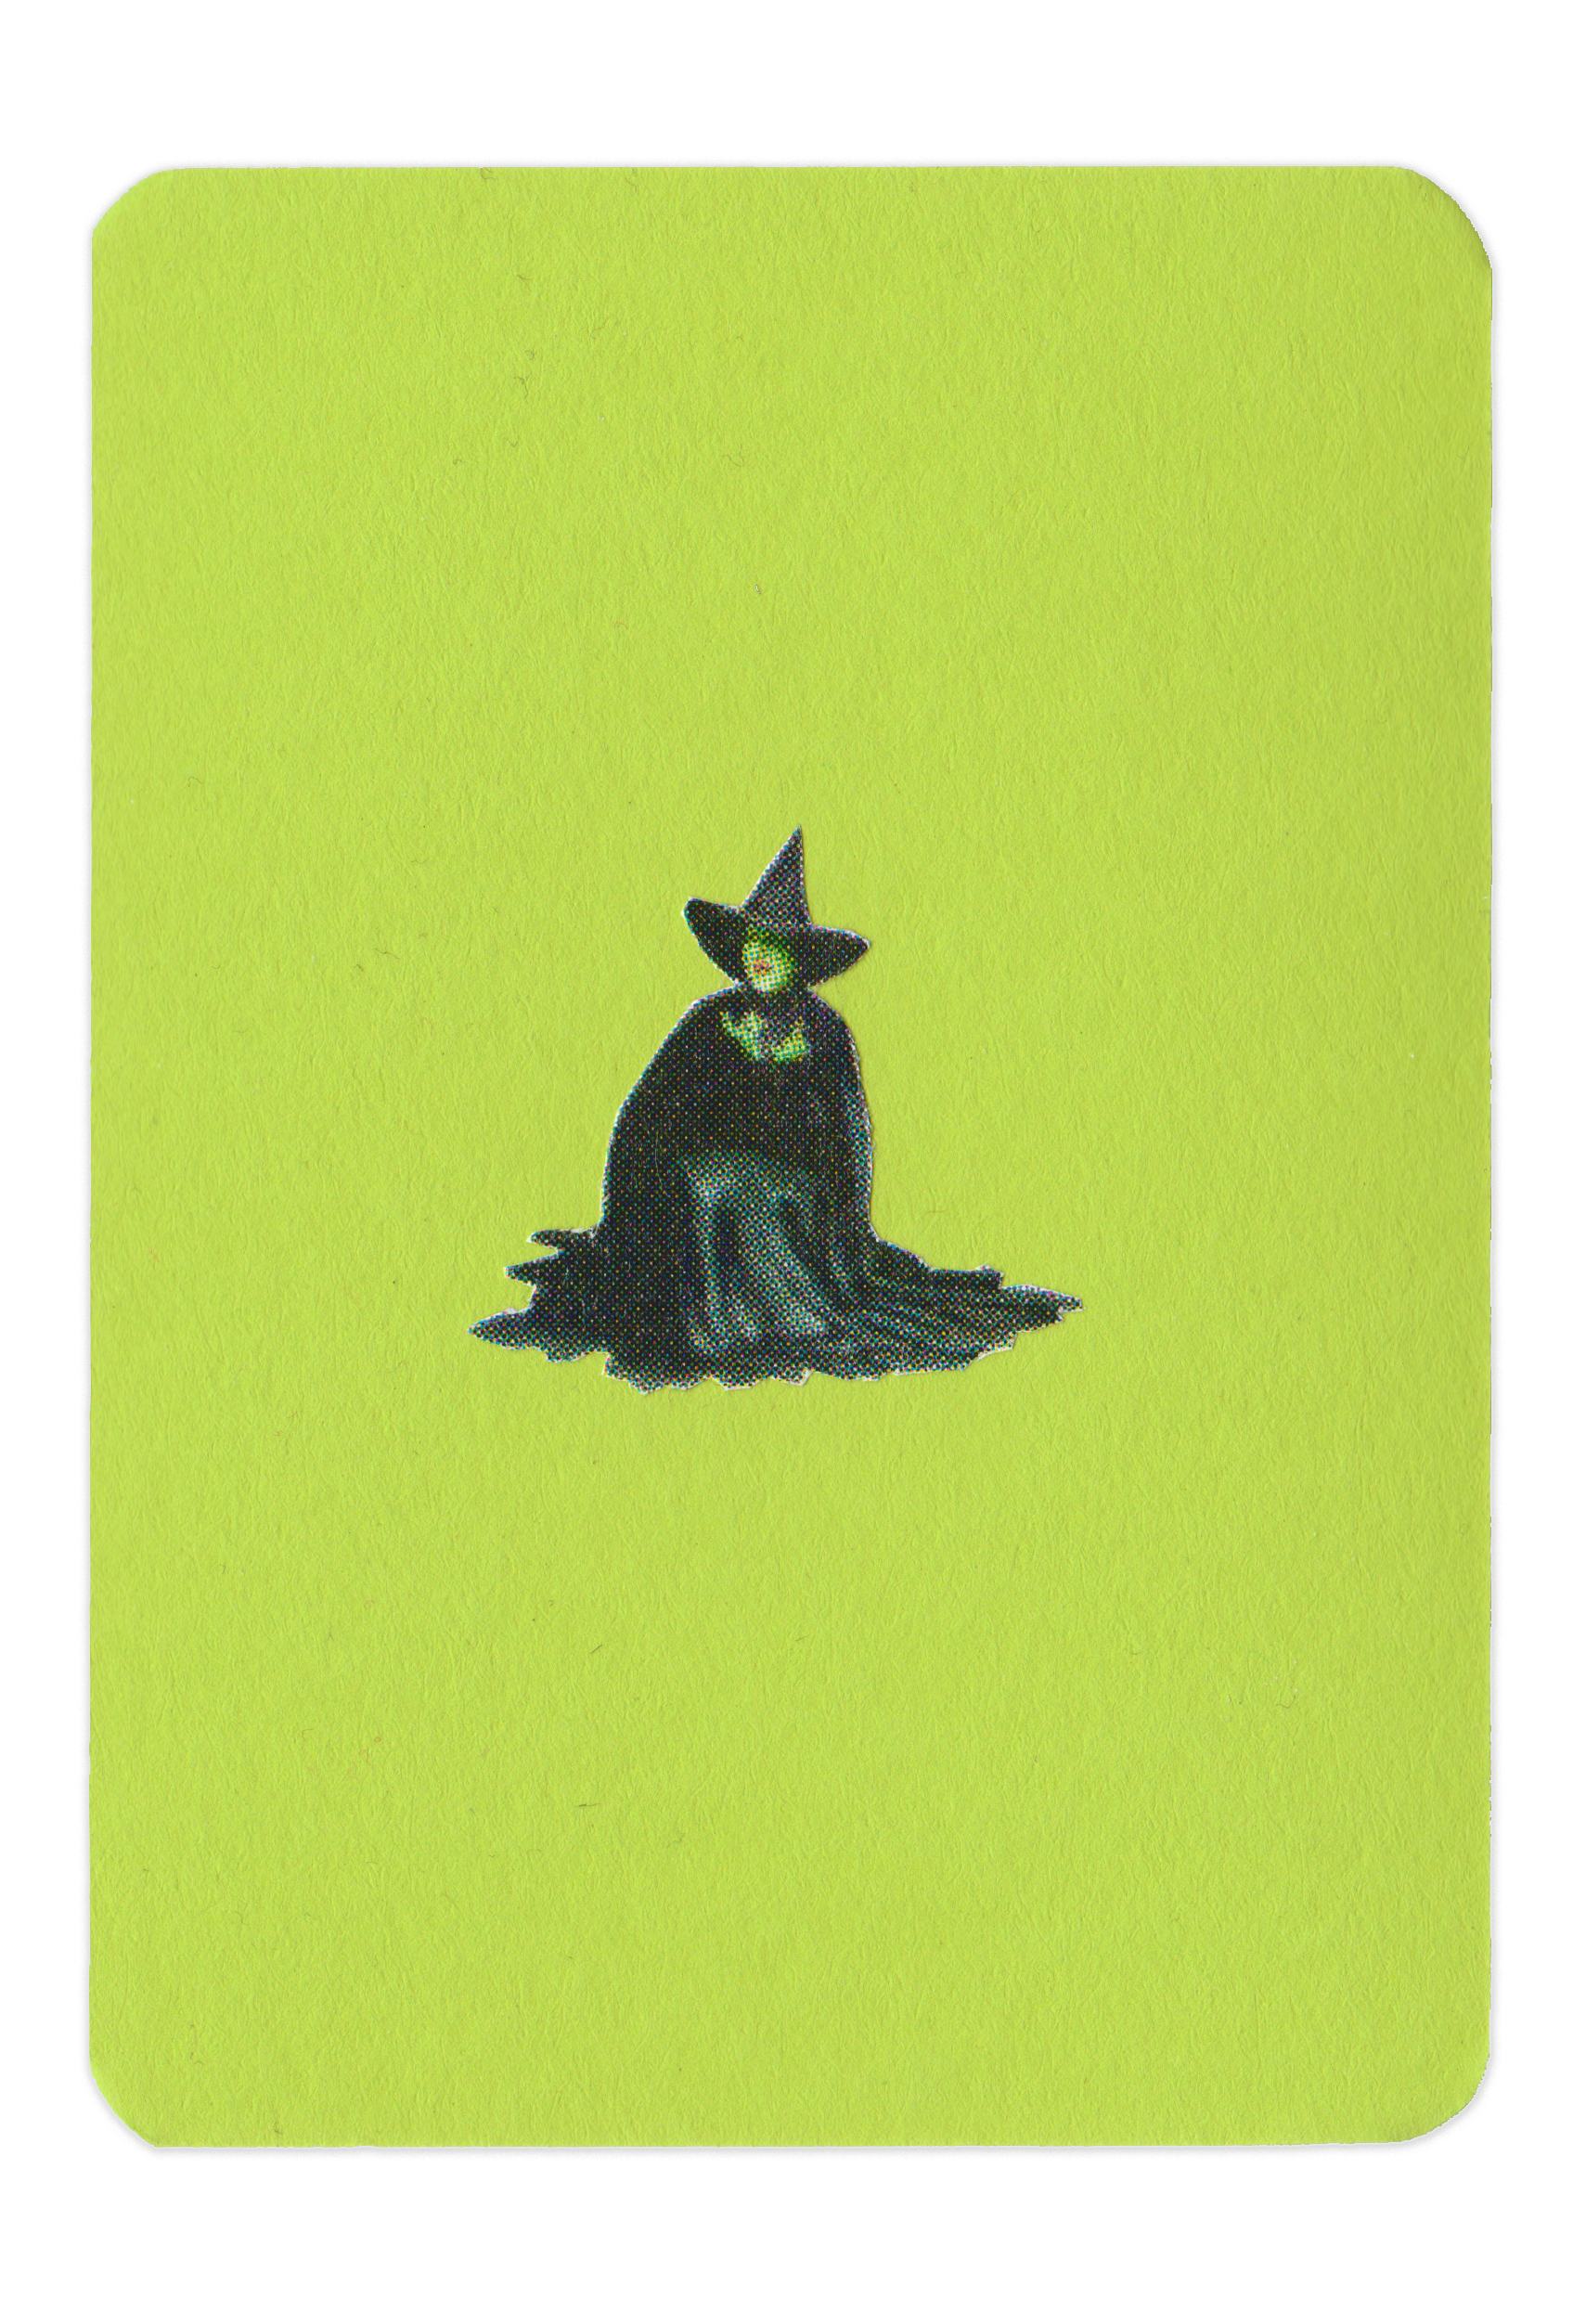 Color_Green_Witch.jpg